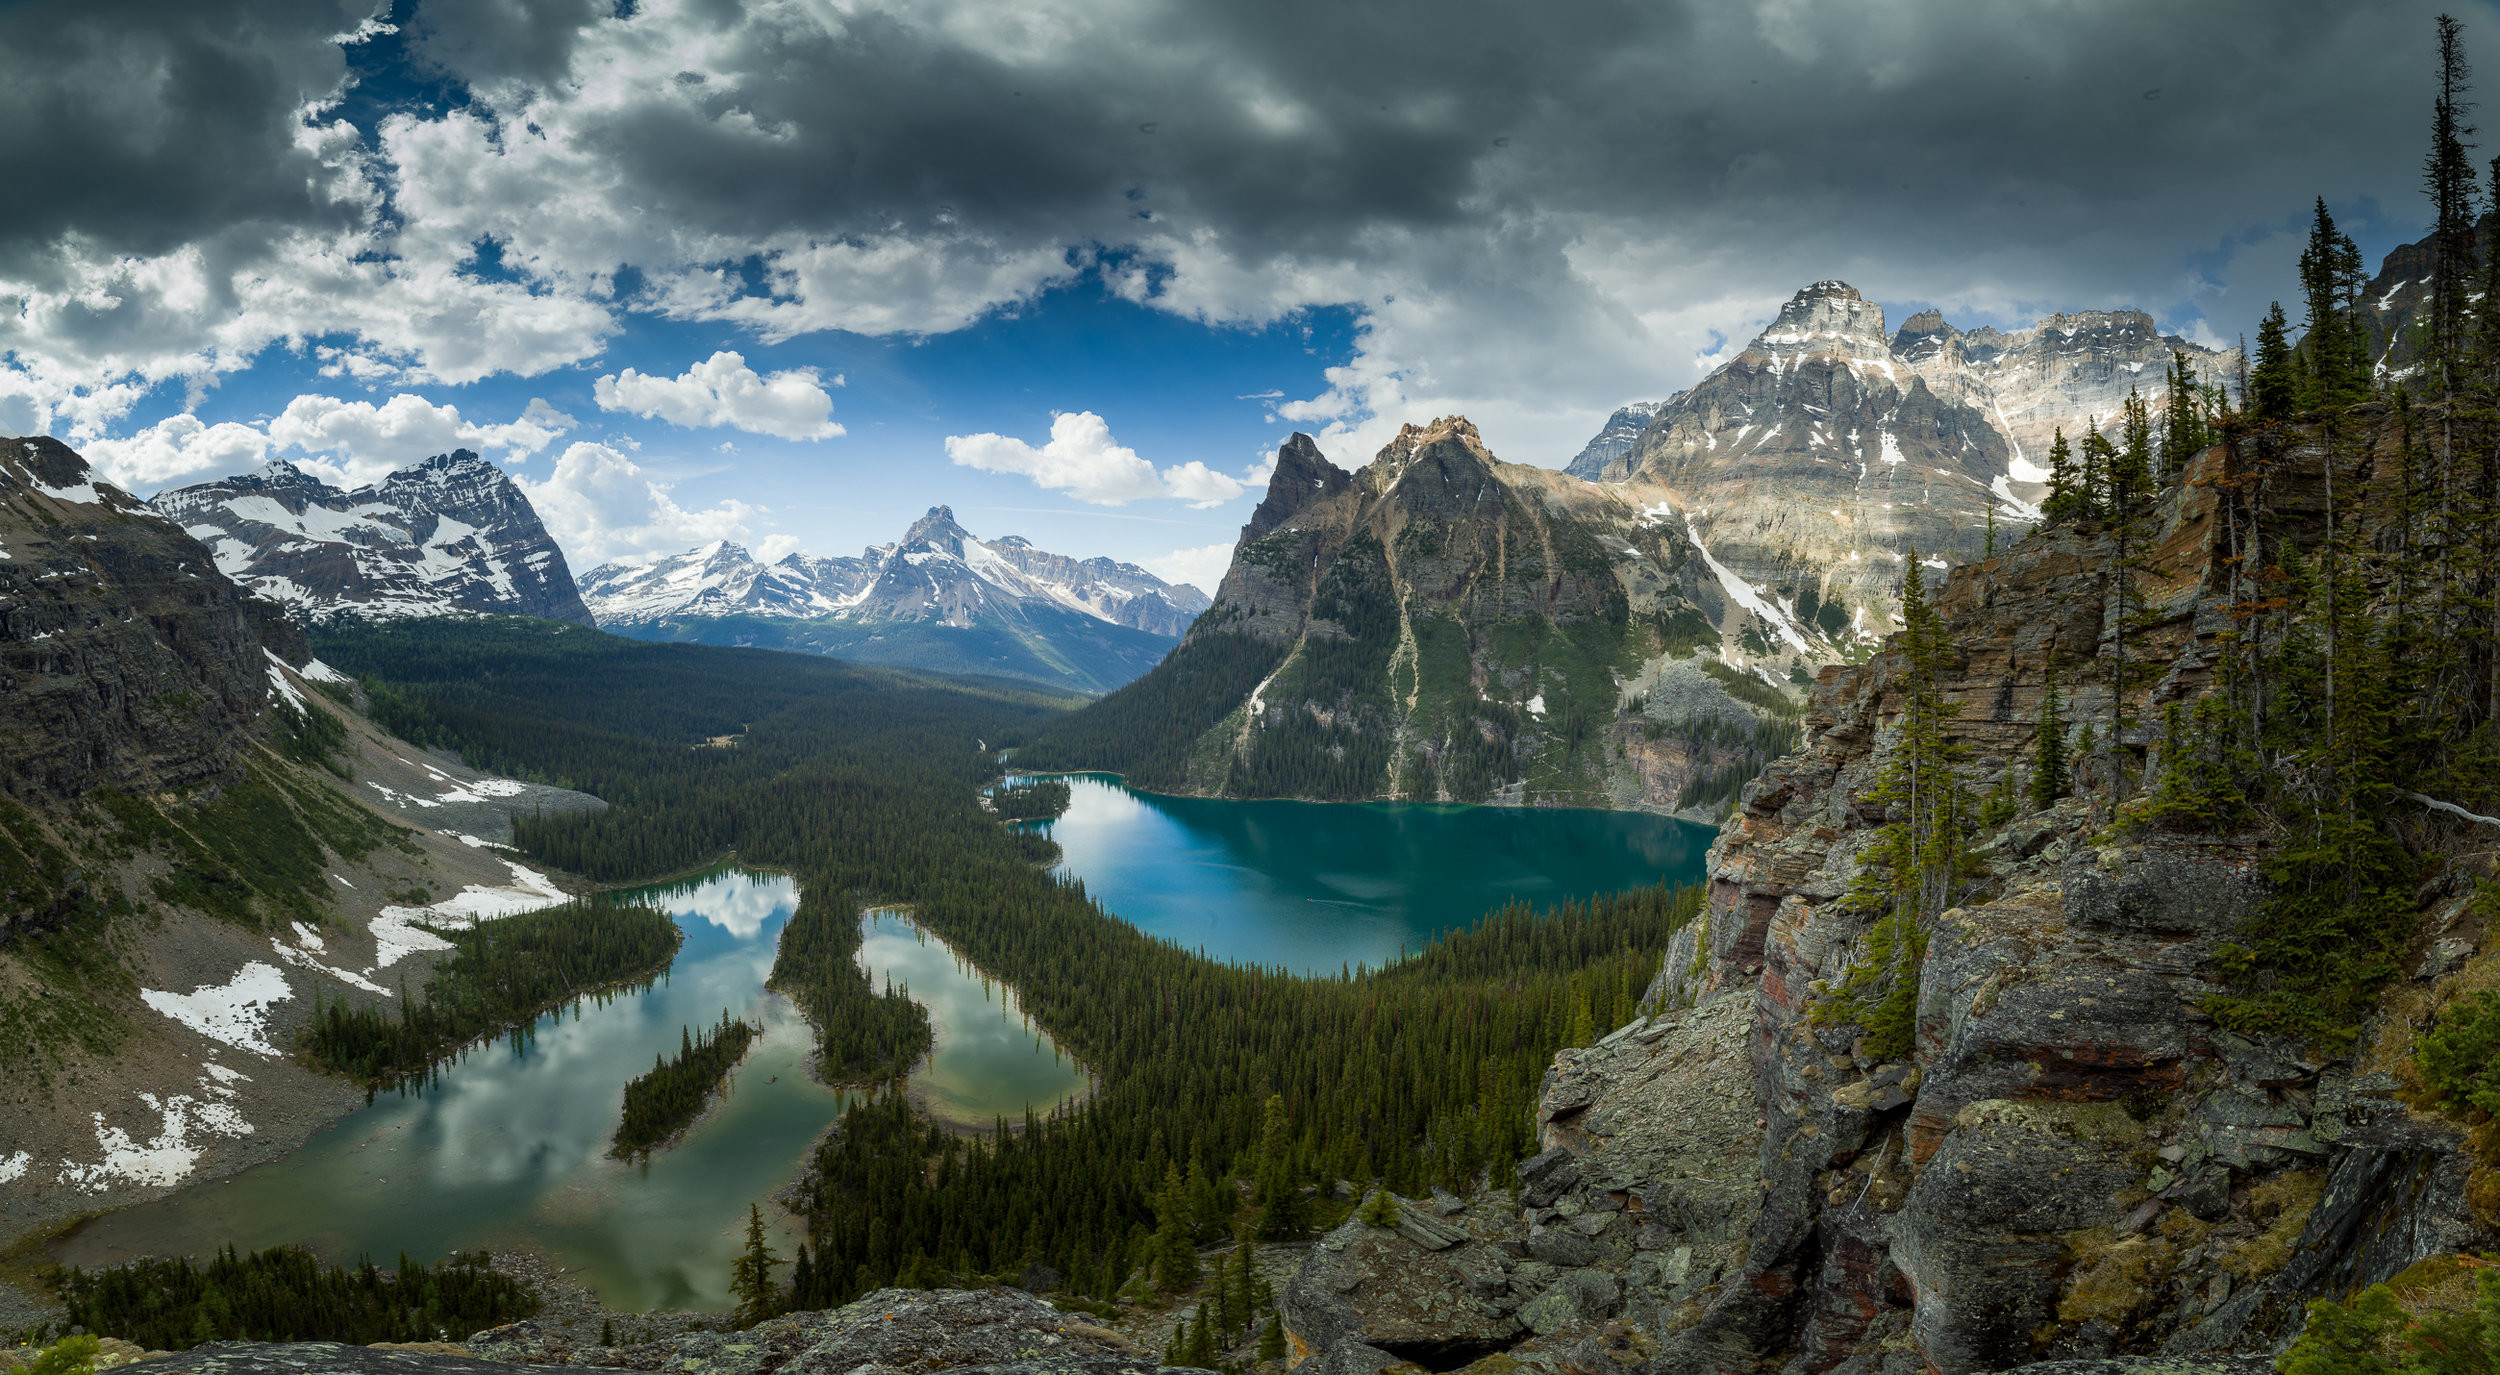 photo_workshop_lake_ohara-3.jpg